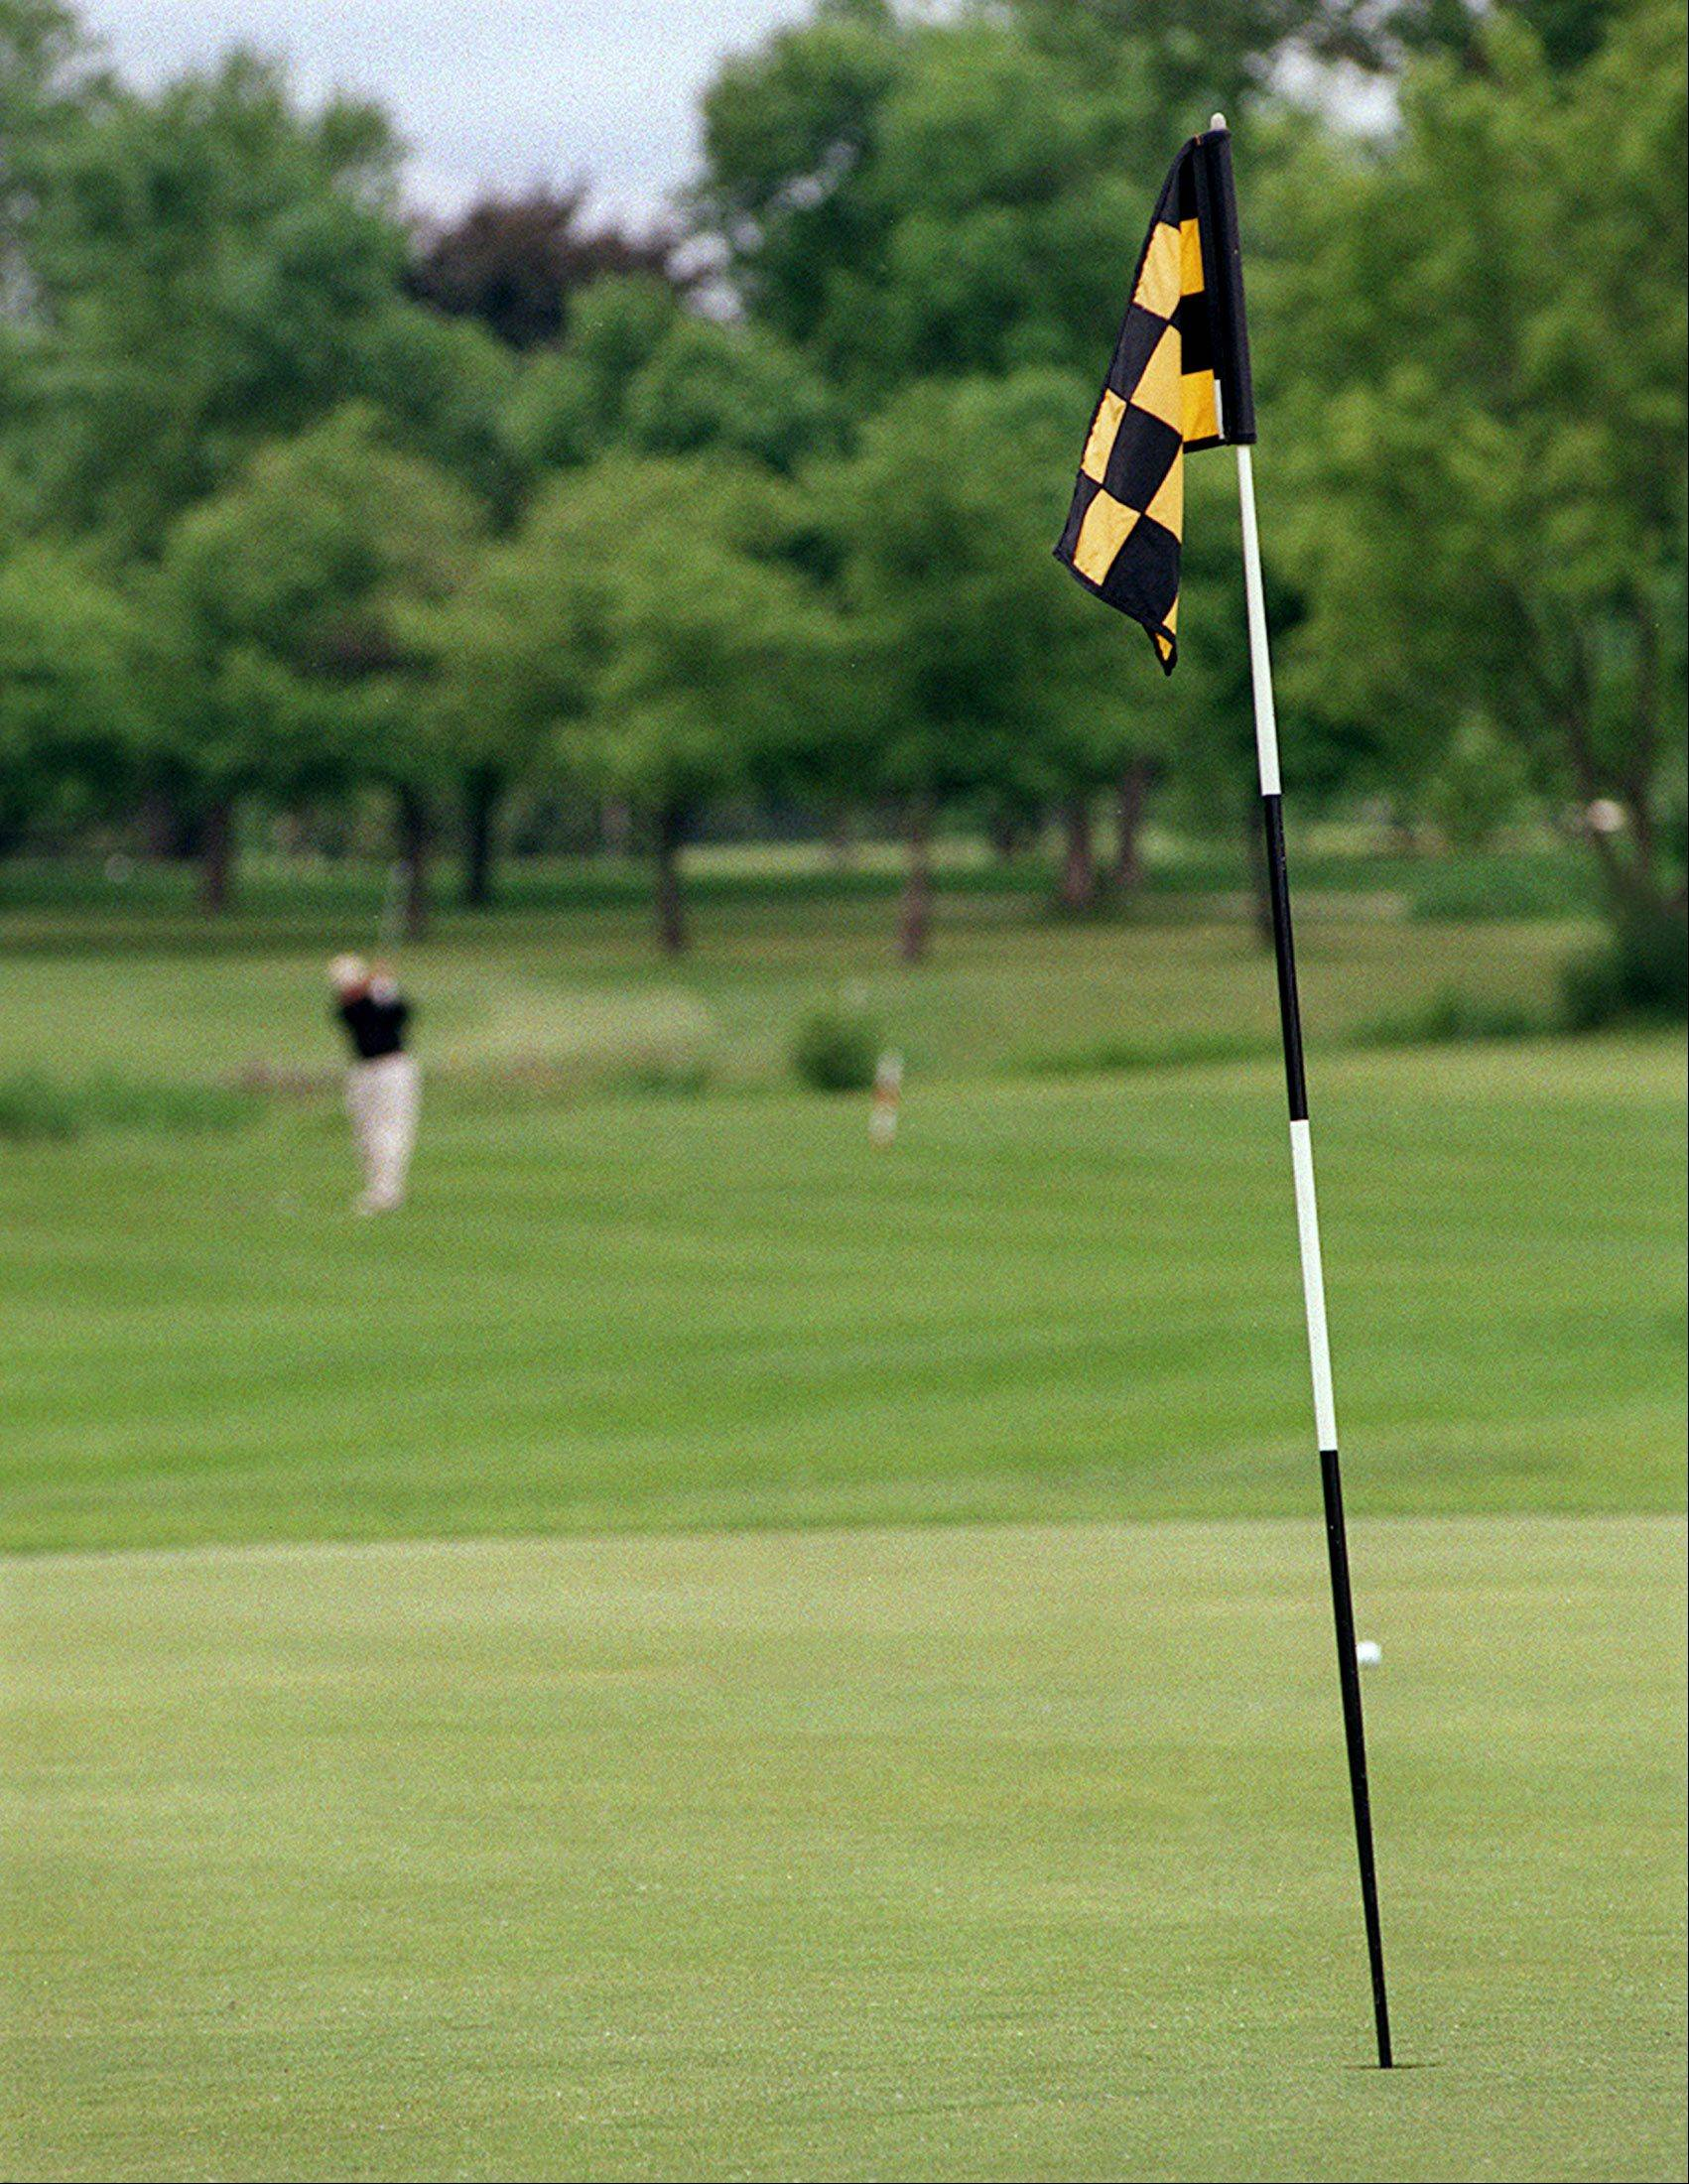 Subsidies for the village�s two golf courses is one reason Buffalo Grove officials say they might face deficits over the next five years. However, officials note, the size of the subsidy will decline from $150,000 to $25,000 between 2014 and 2018.